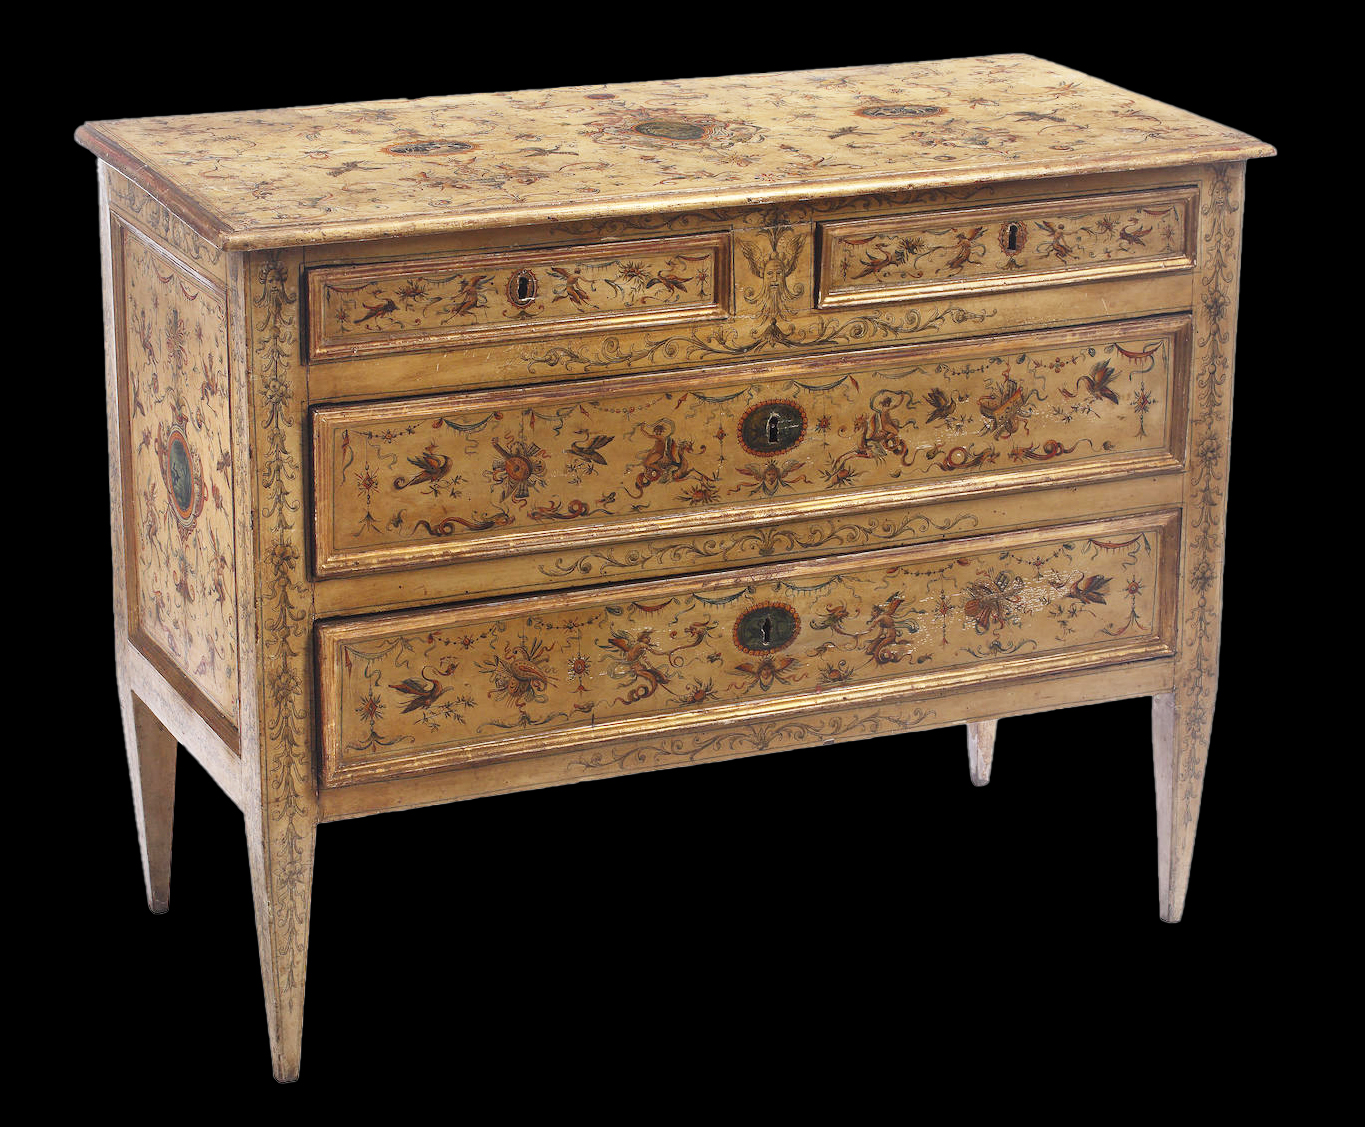 Italian, Neoclassical period, painted and parcel-gilt chest of drawers